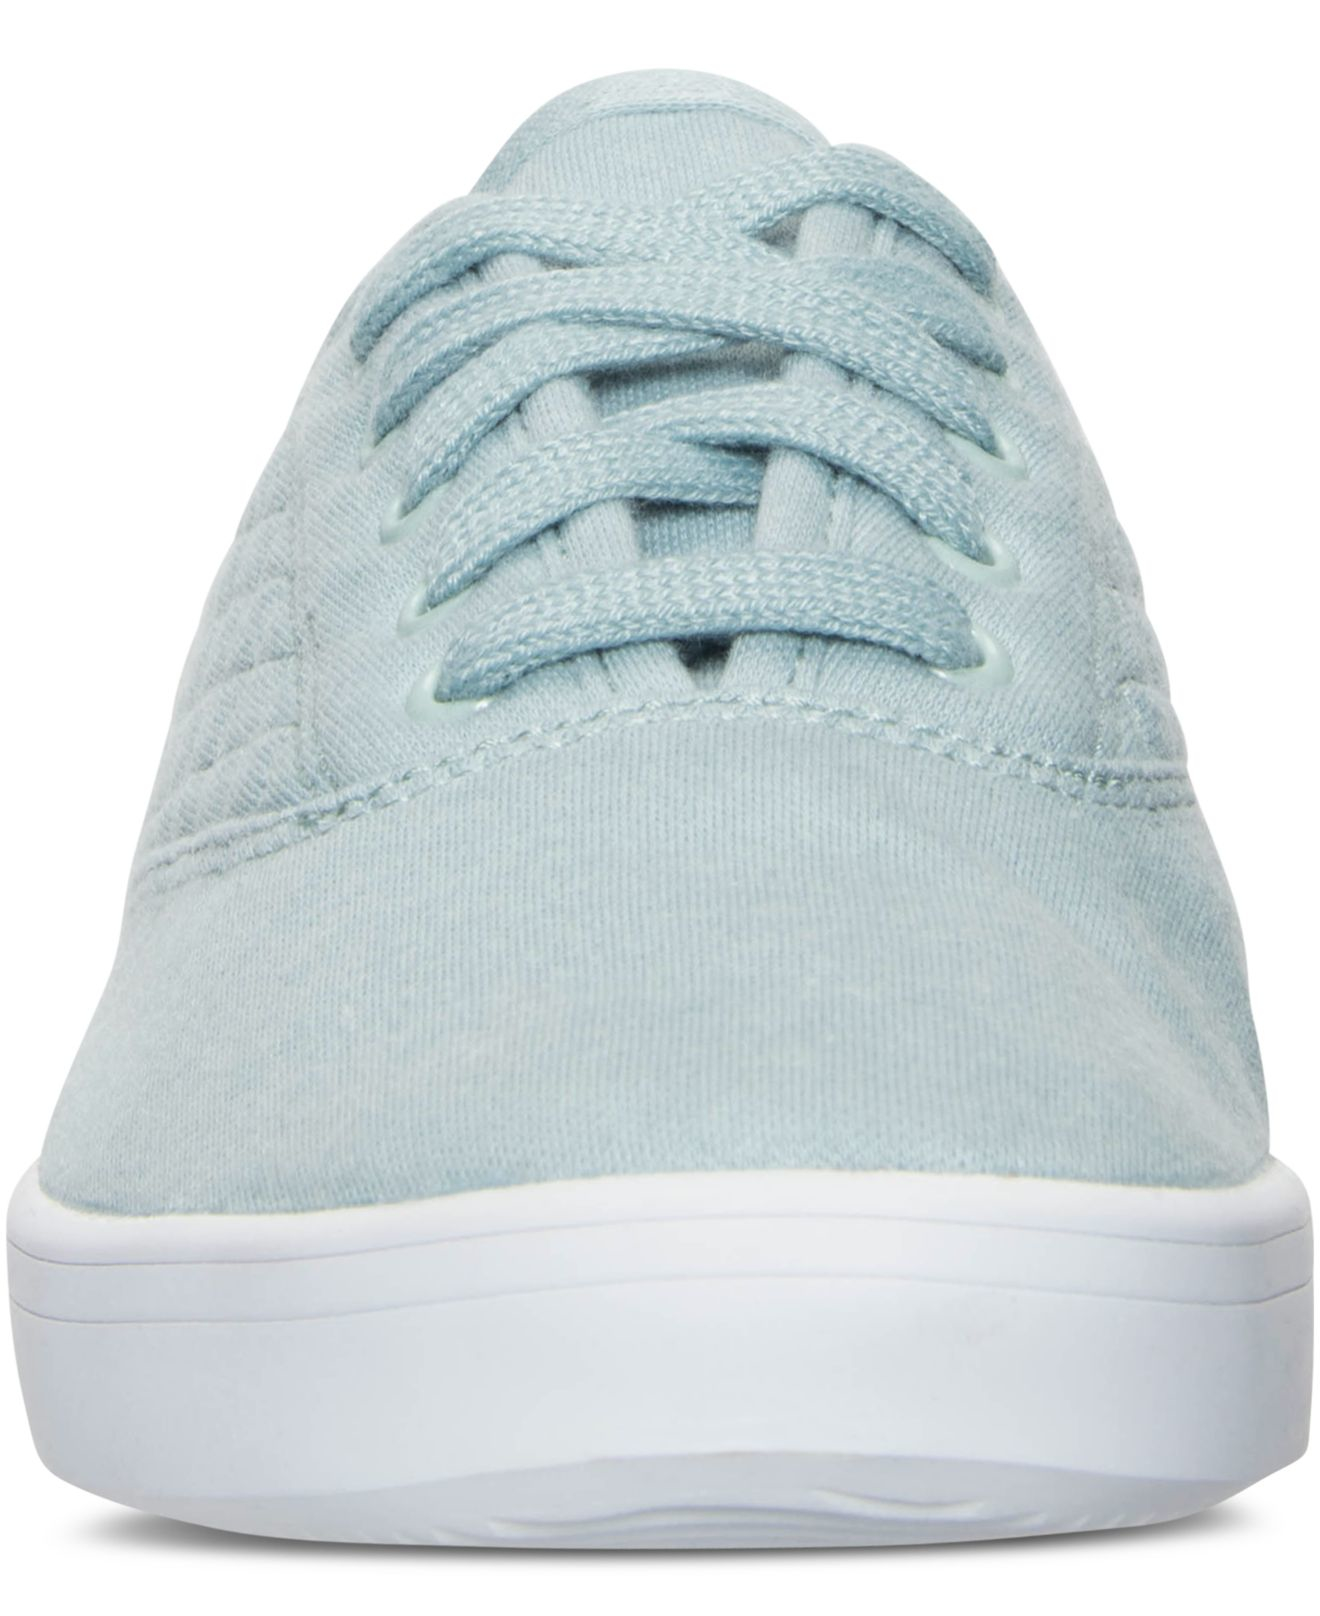 e0cbb3547752f5 Lyst - Reebok Women s Royal Tenstall Casual Sneakers From Finish Line in  Green